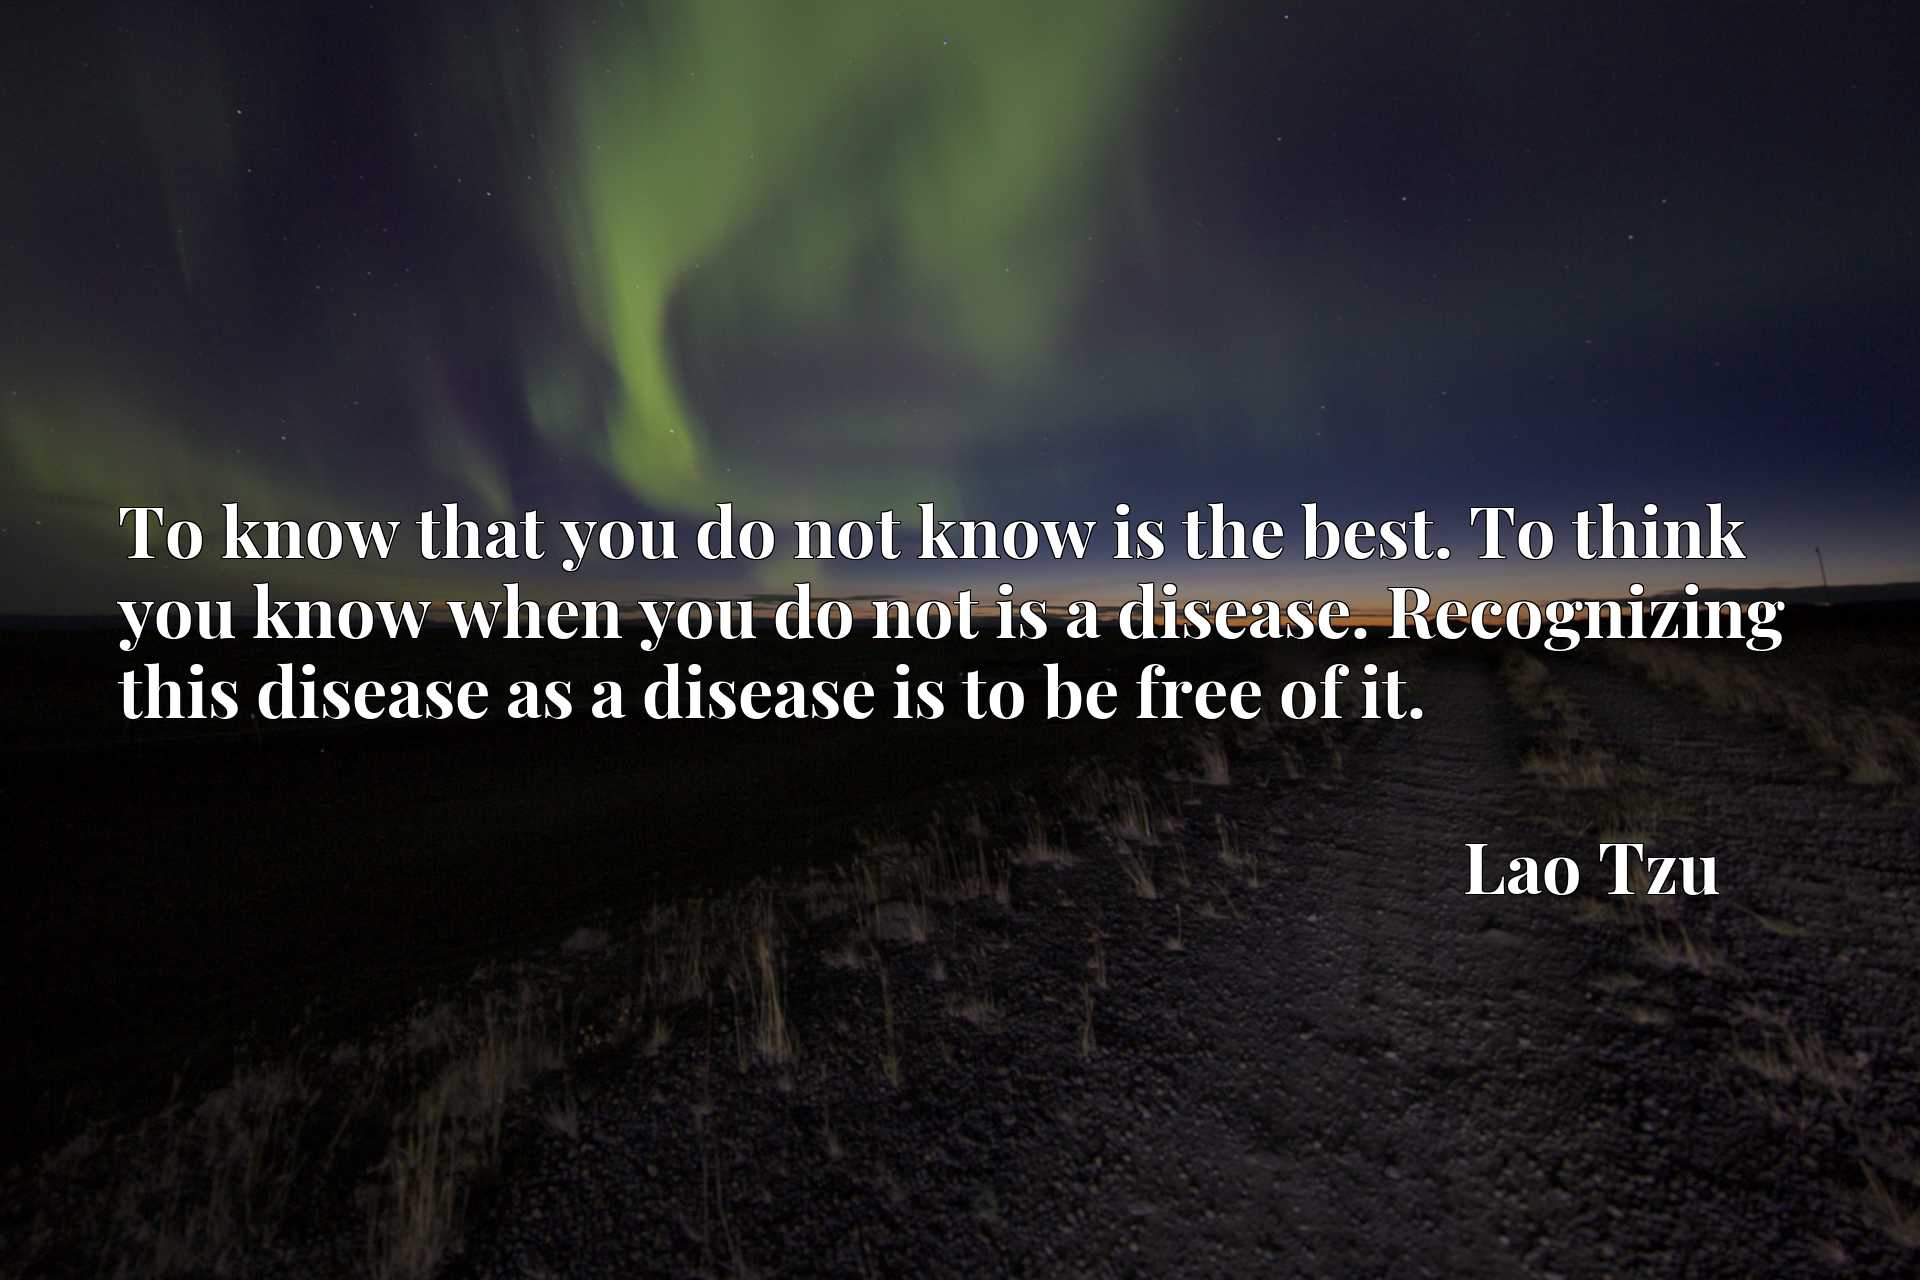 To know that you do not know is the best. To think you know when you do not is a disease. Recognizing this disease as a disease is to be free of it.